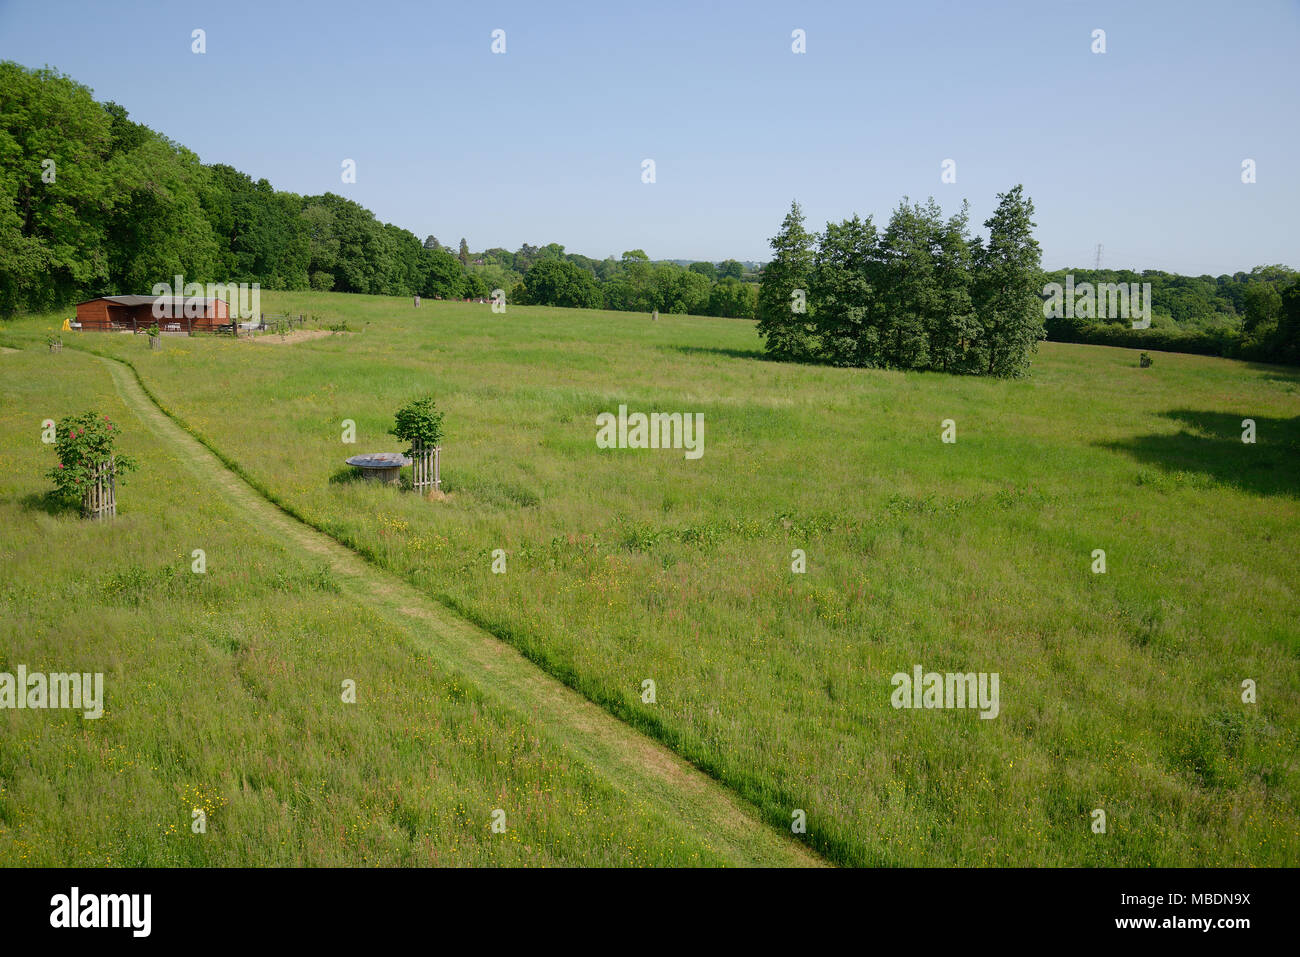 High viewpoint of a grass filed or paddock in early summer in the United Kingdom. - Stock Image